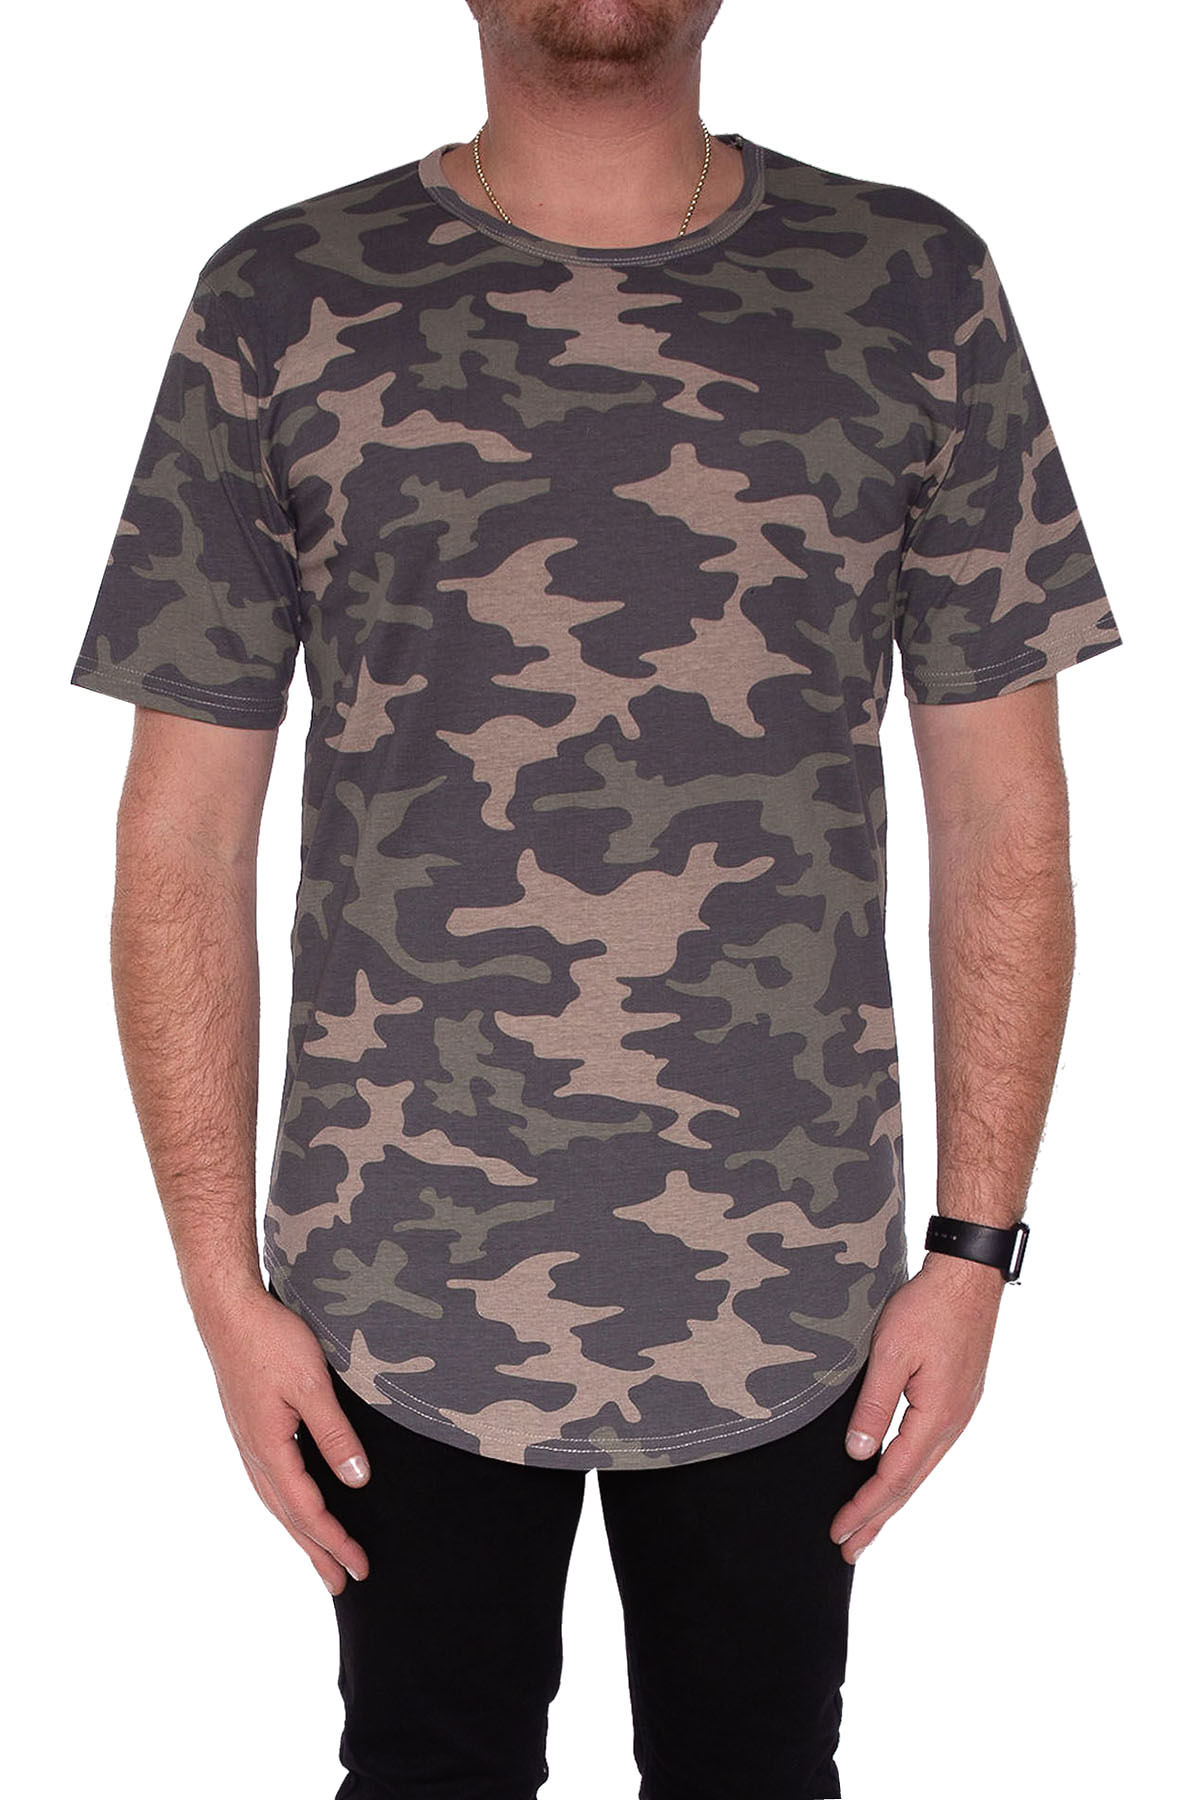 Image of CB Tall Tee in Camo